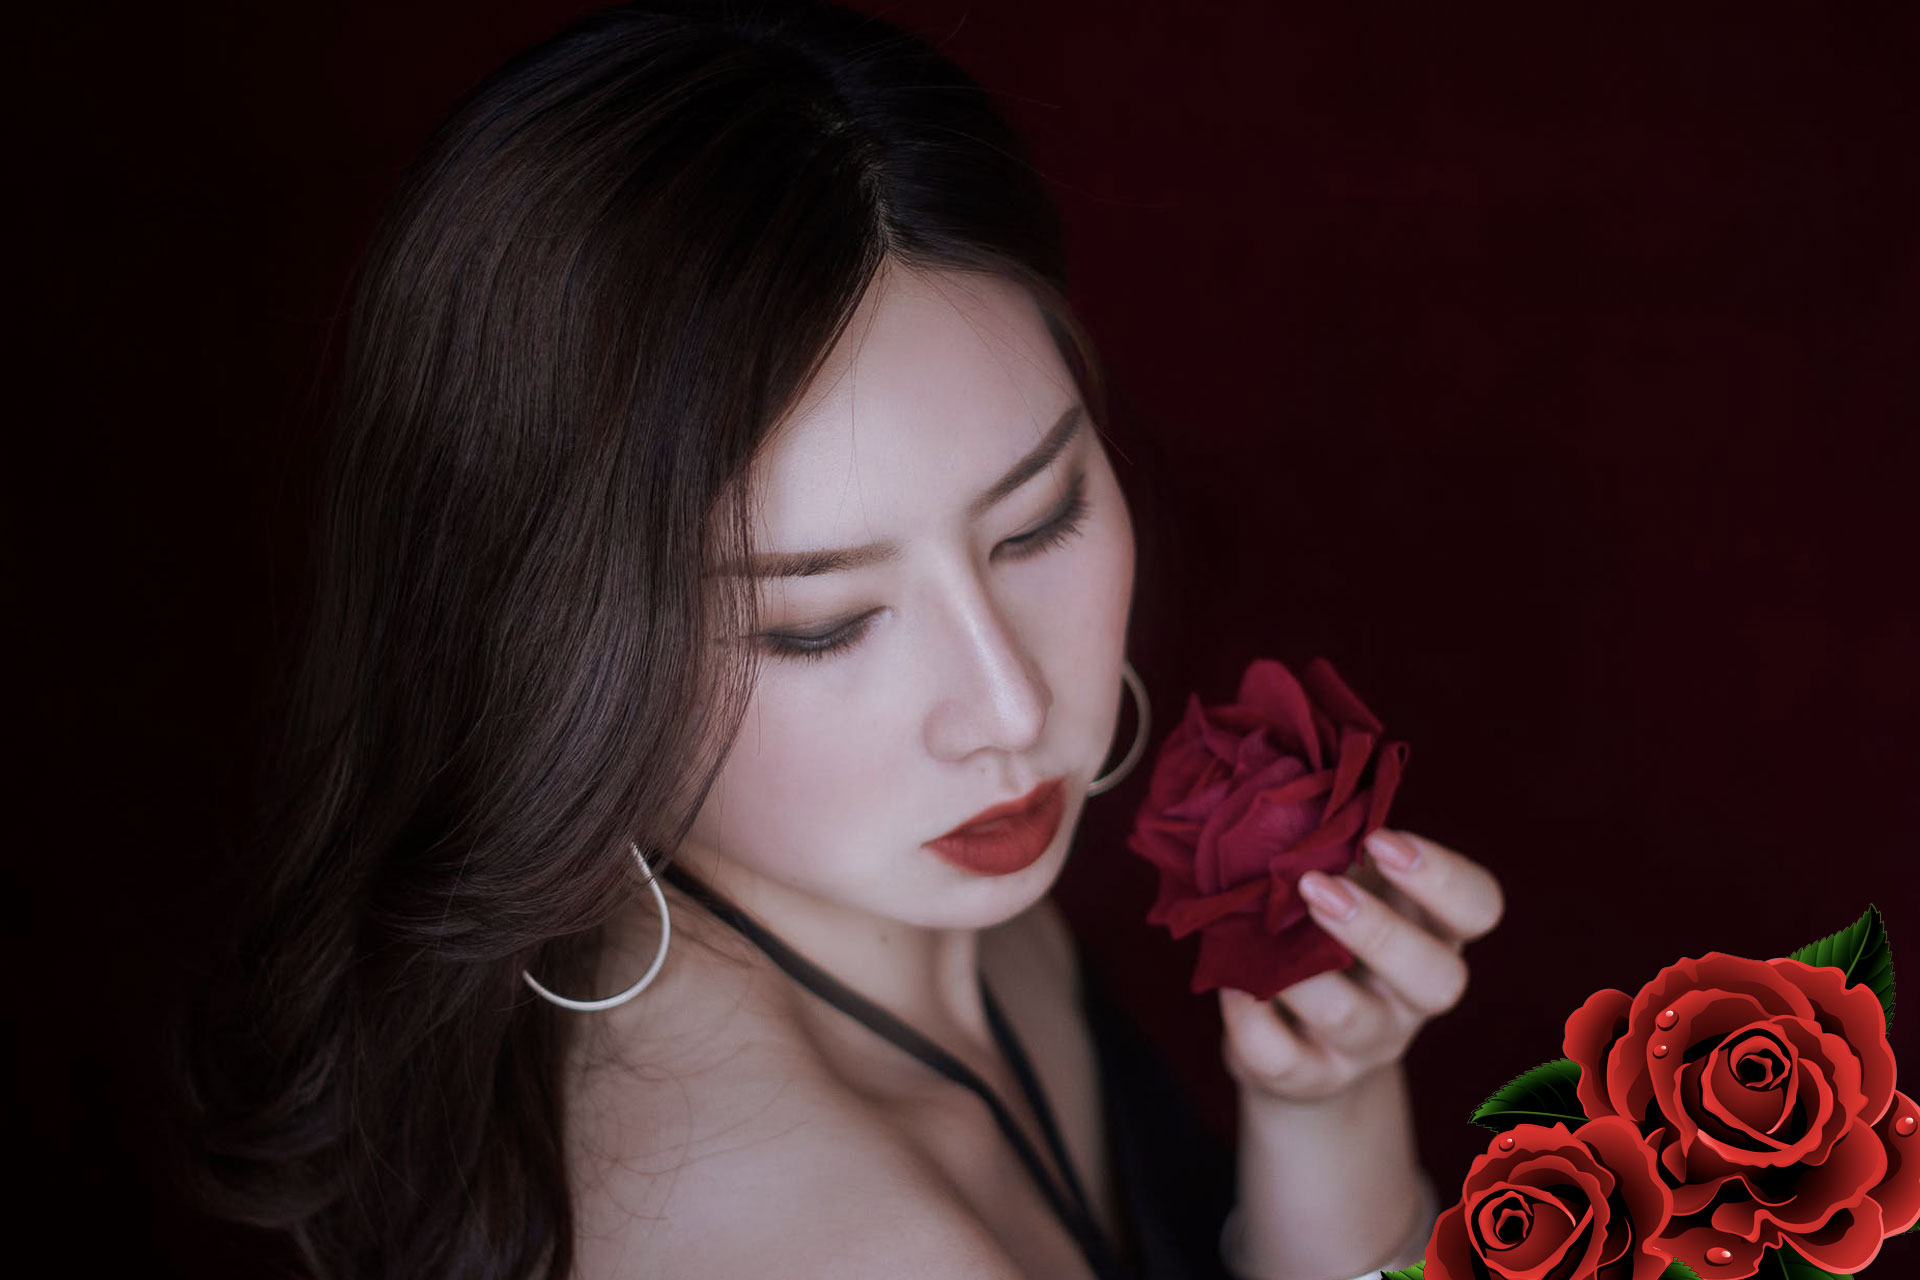 rose for glowing skin